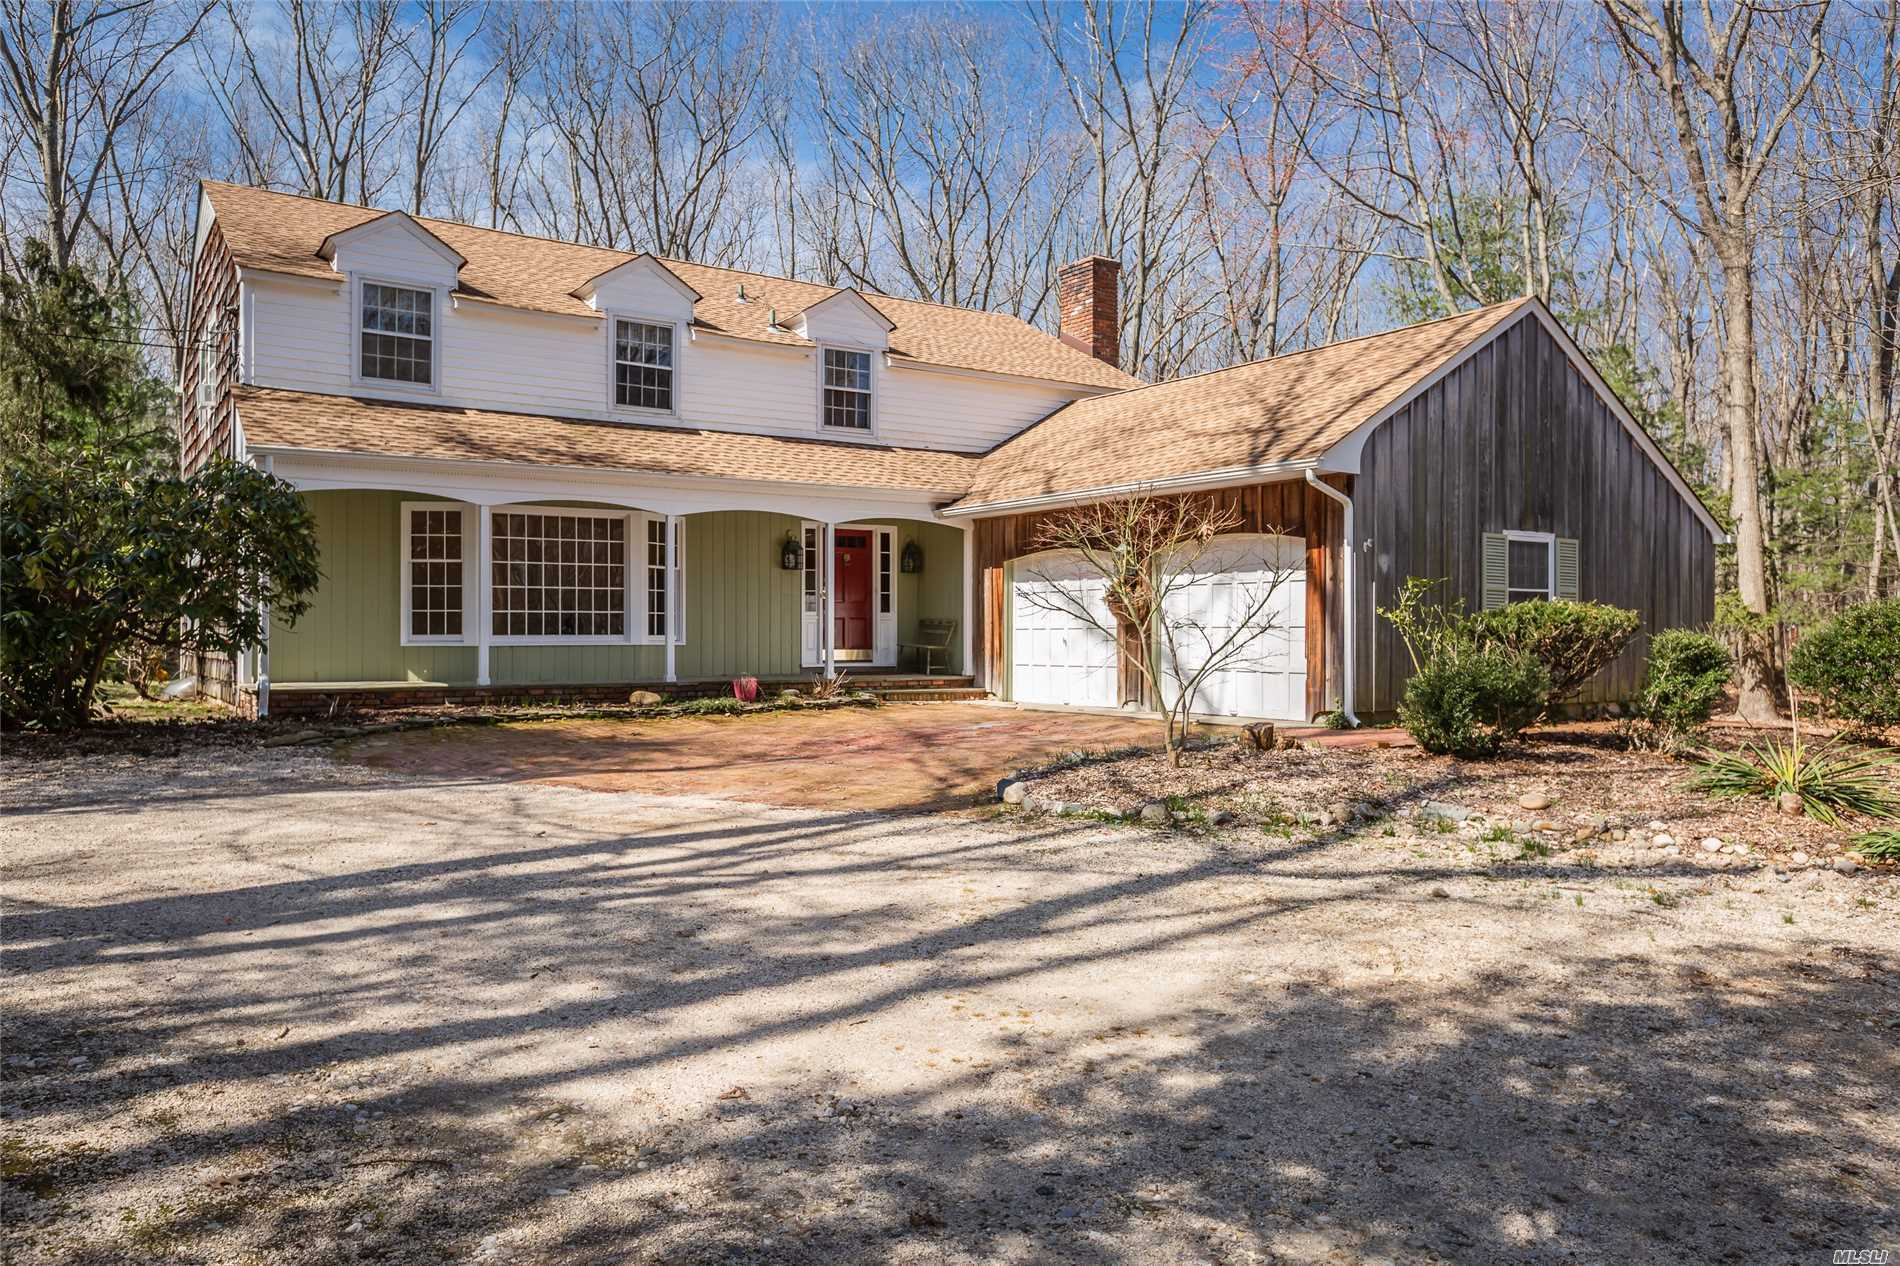 Don't Miss This Wonderful Opportunity to Own a Home Set On 2.2 Acres In The Upscale Lloyd Neck Community. Home Offers 11 Spacious Rooms With Beach & Dock Access Rights. 3 Properties away from the Long Island Sound. Goose Hill Elementary, Lloyd Harbor Middle and Cold Spring Harbor High School. Make This Your Dream Home!